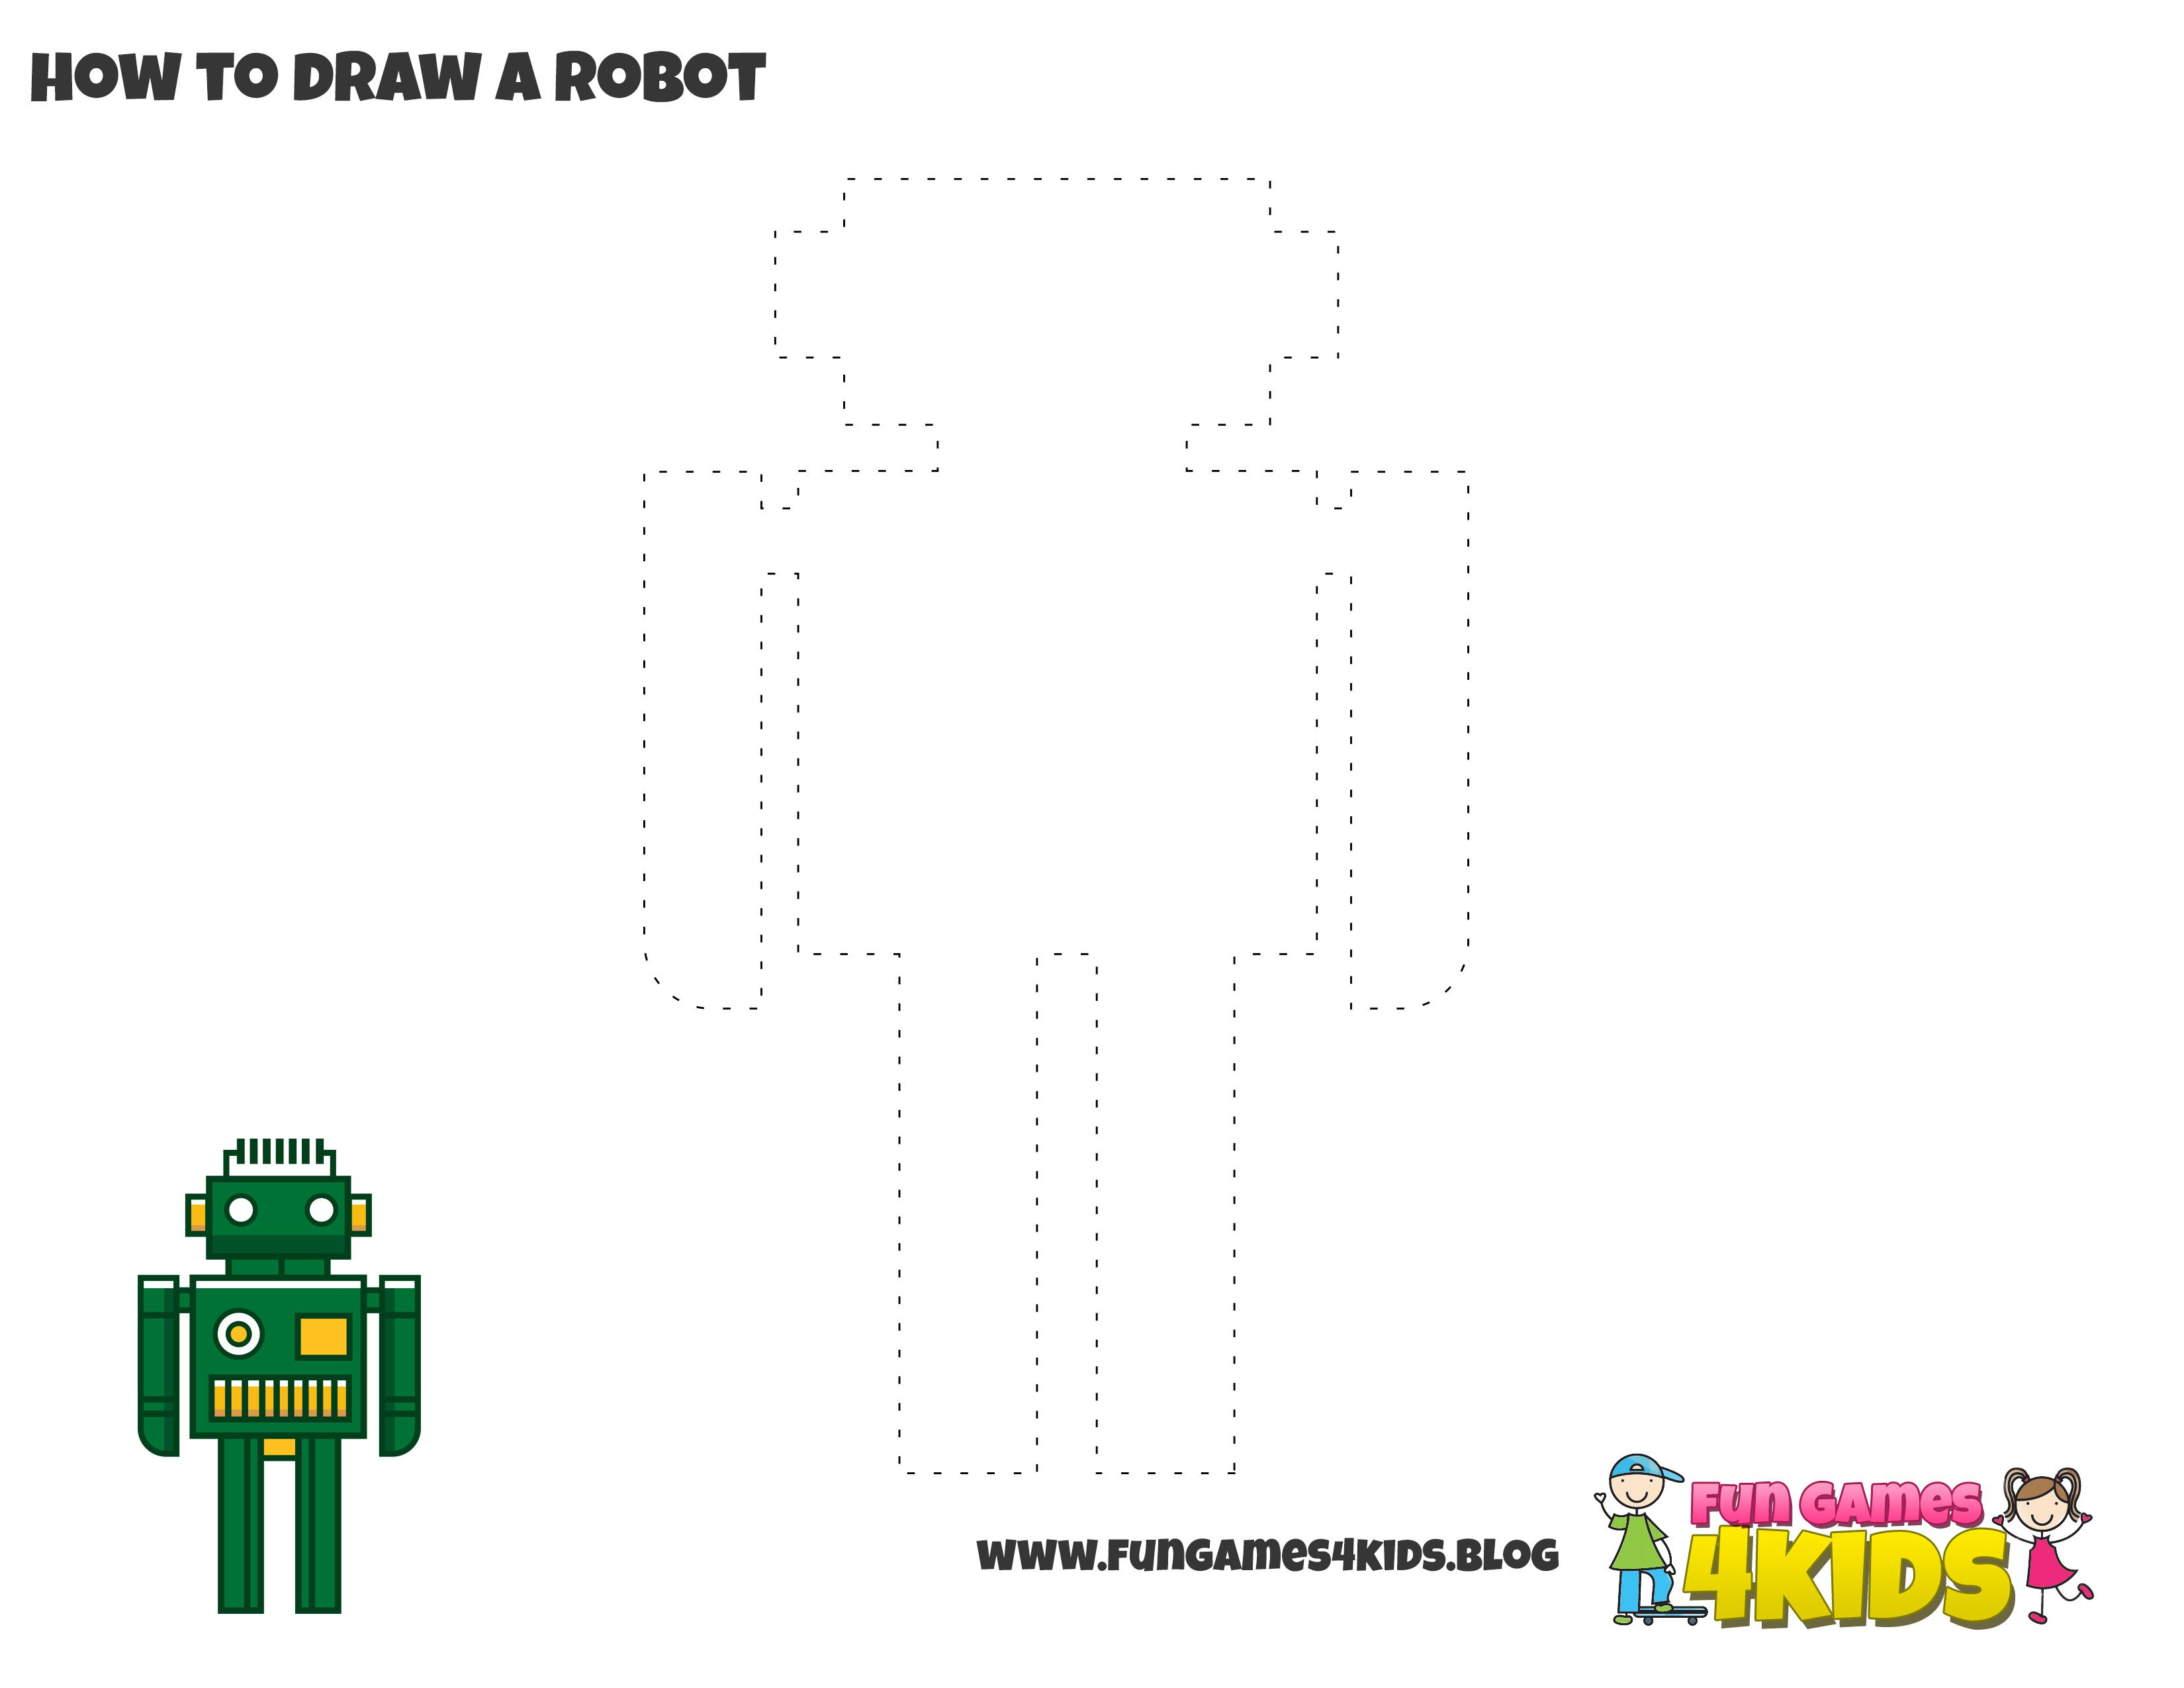 How To Draw A Robot From Fungames4kidsub